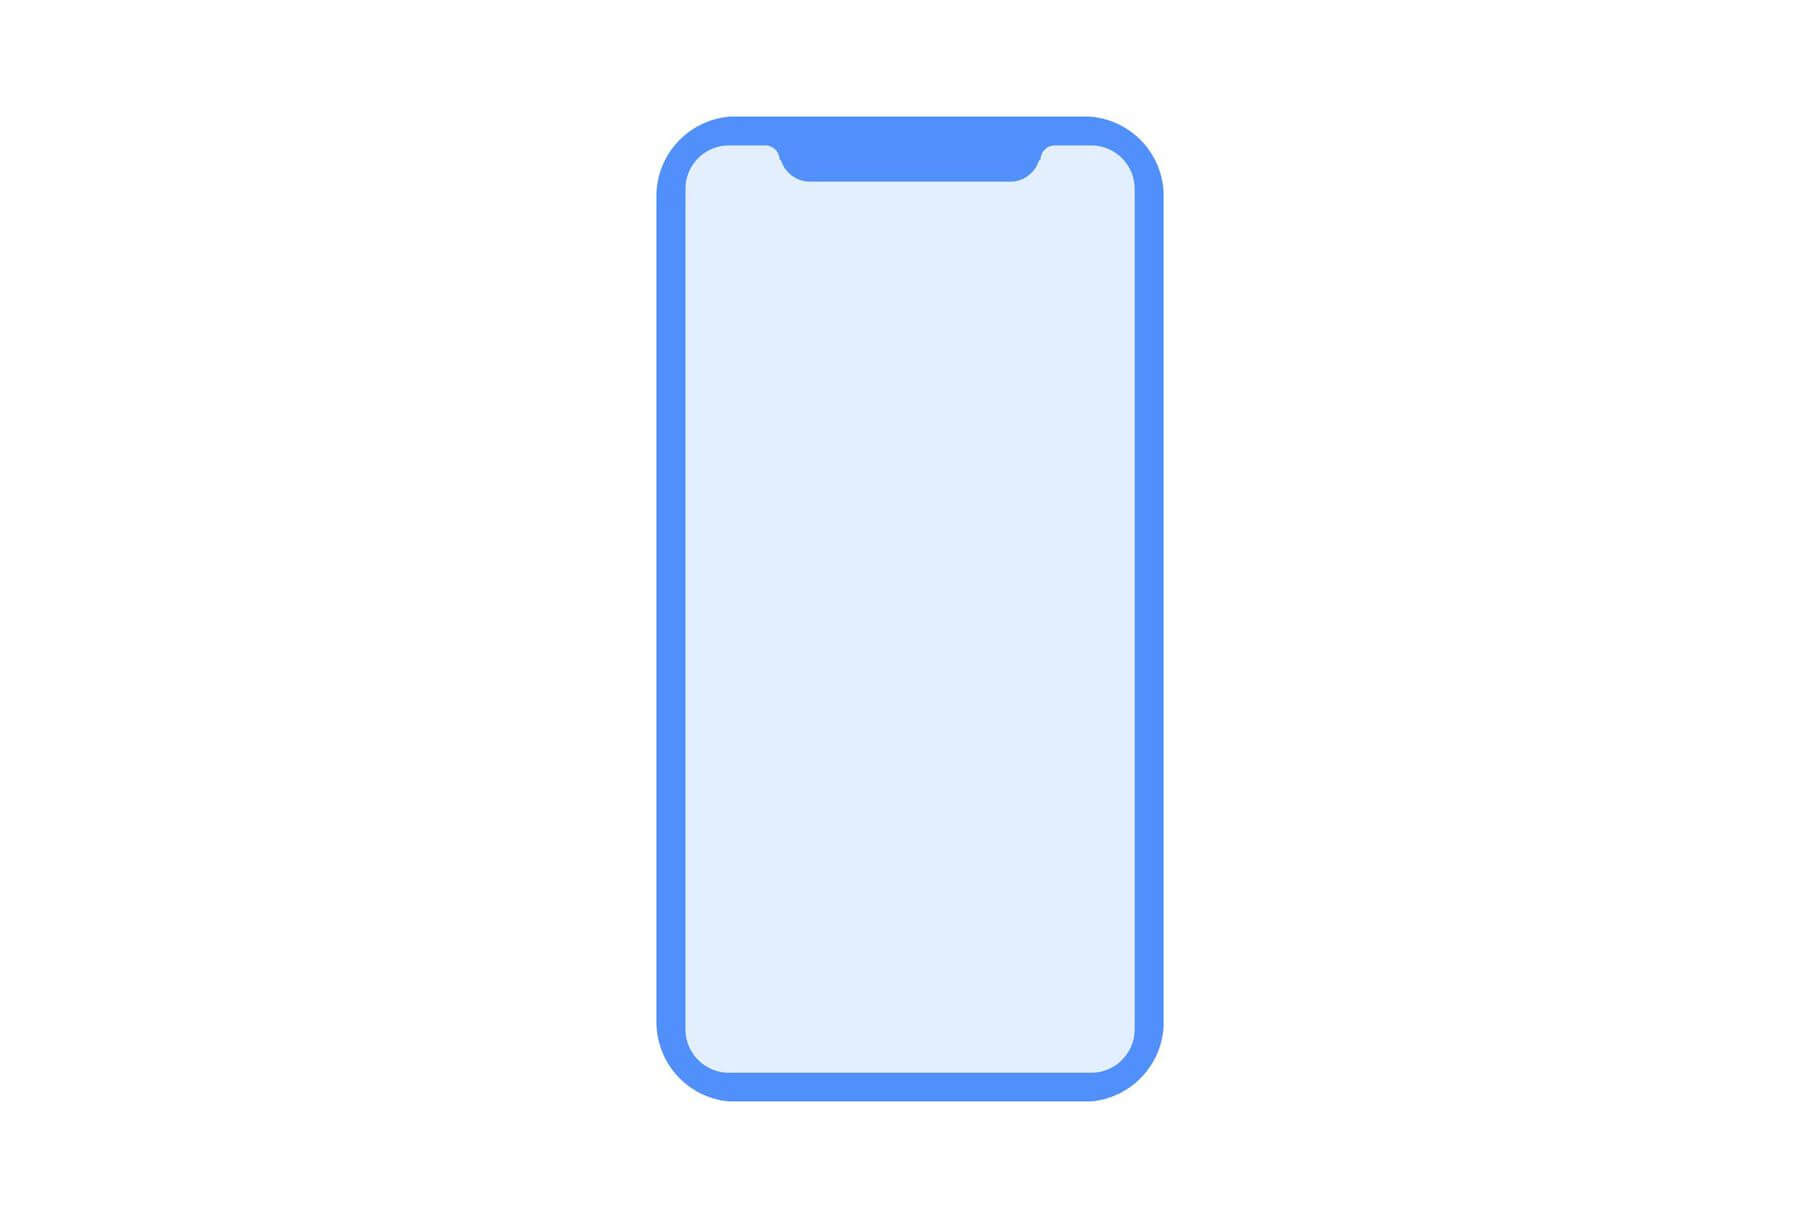 Iphone 8 icon. 1501468865